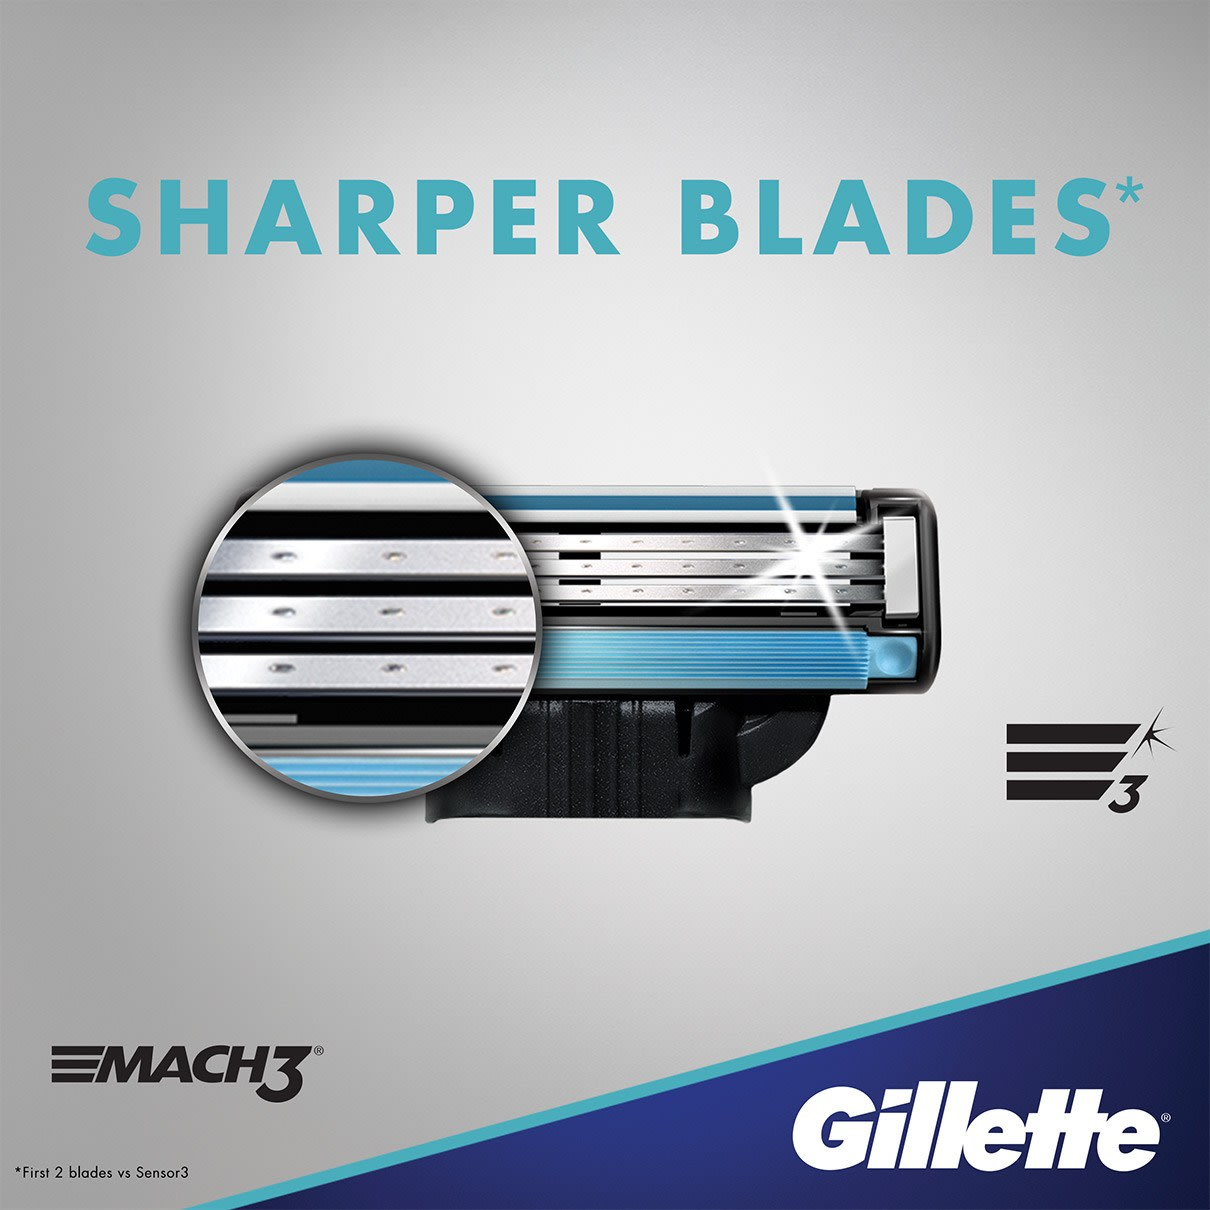 Sharper blades* *First 2 blades vs. Sensor3